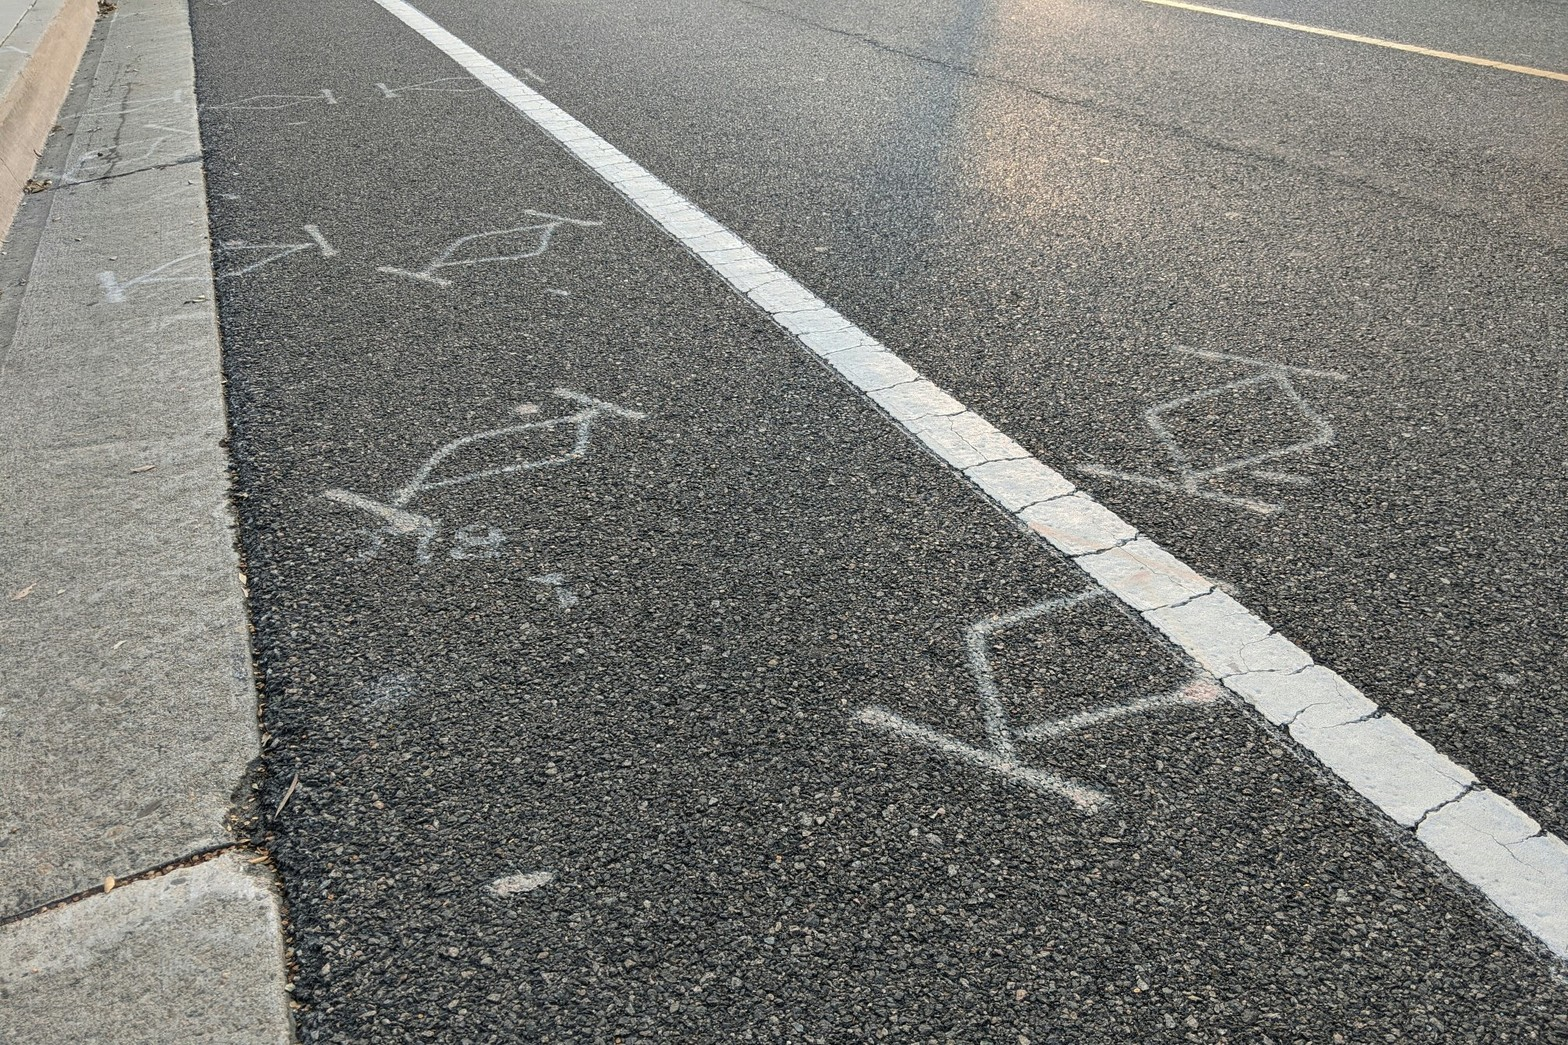 I always think these markings look like TIE Fighters.